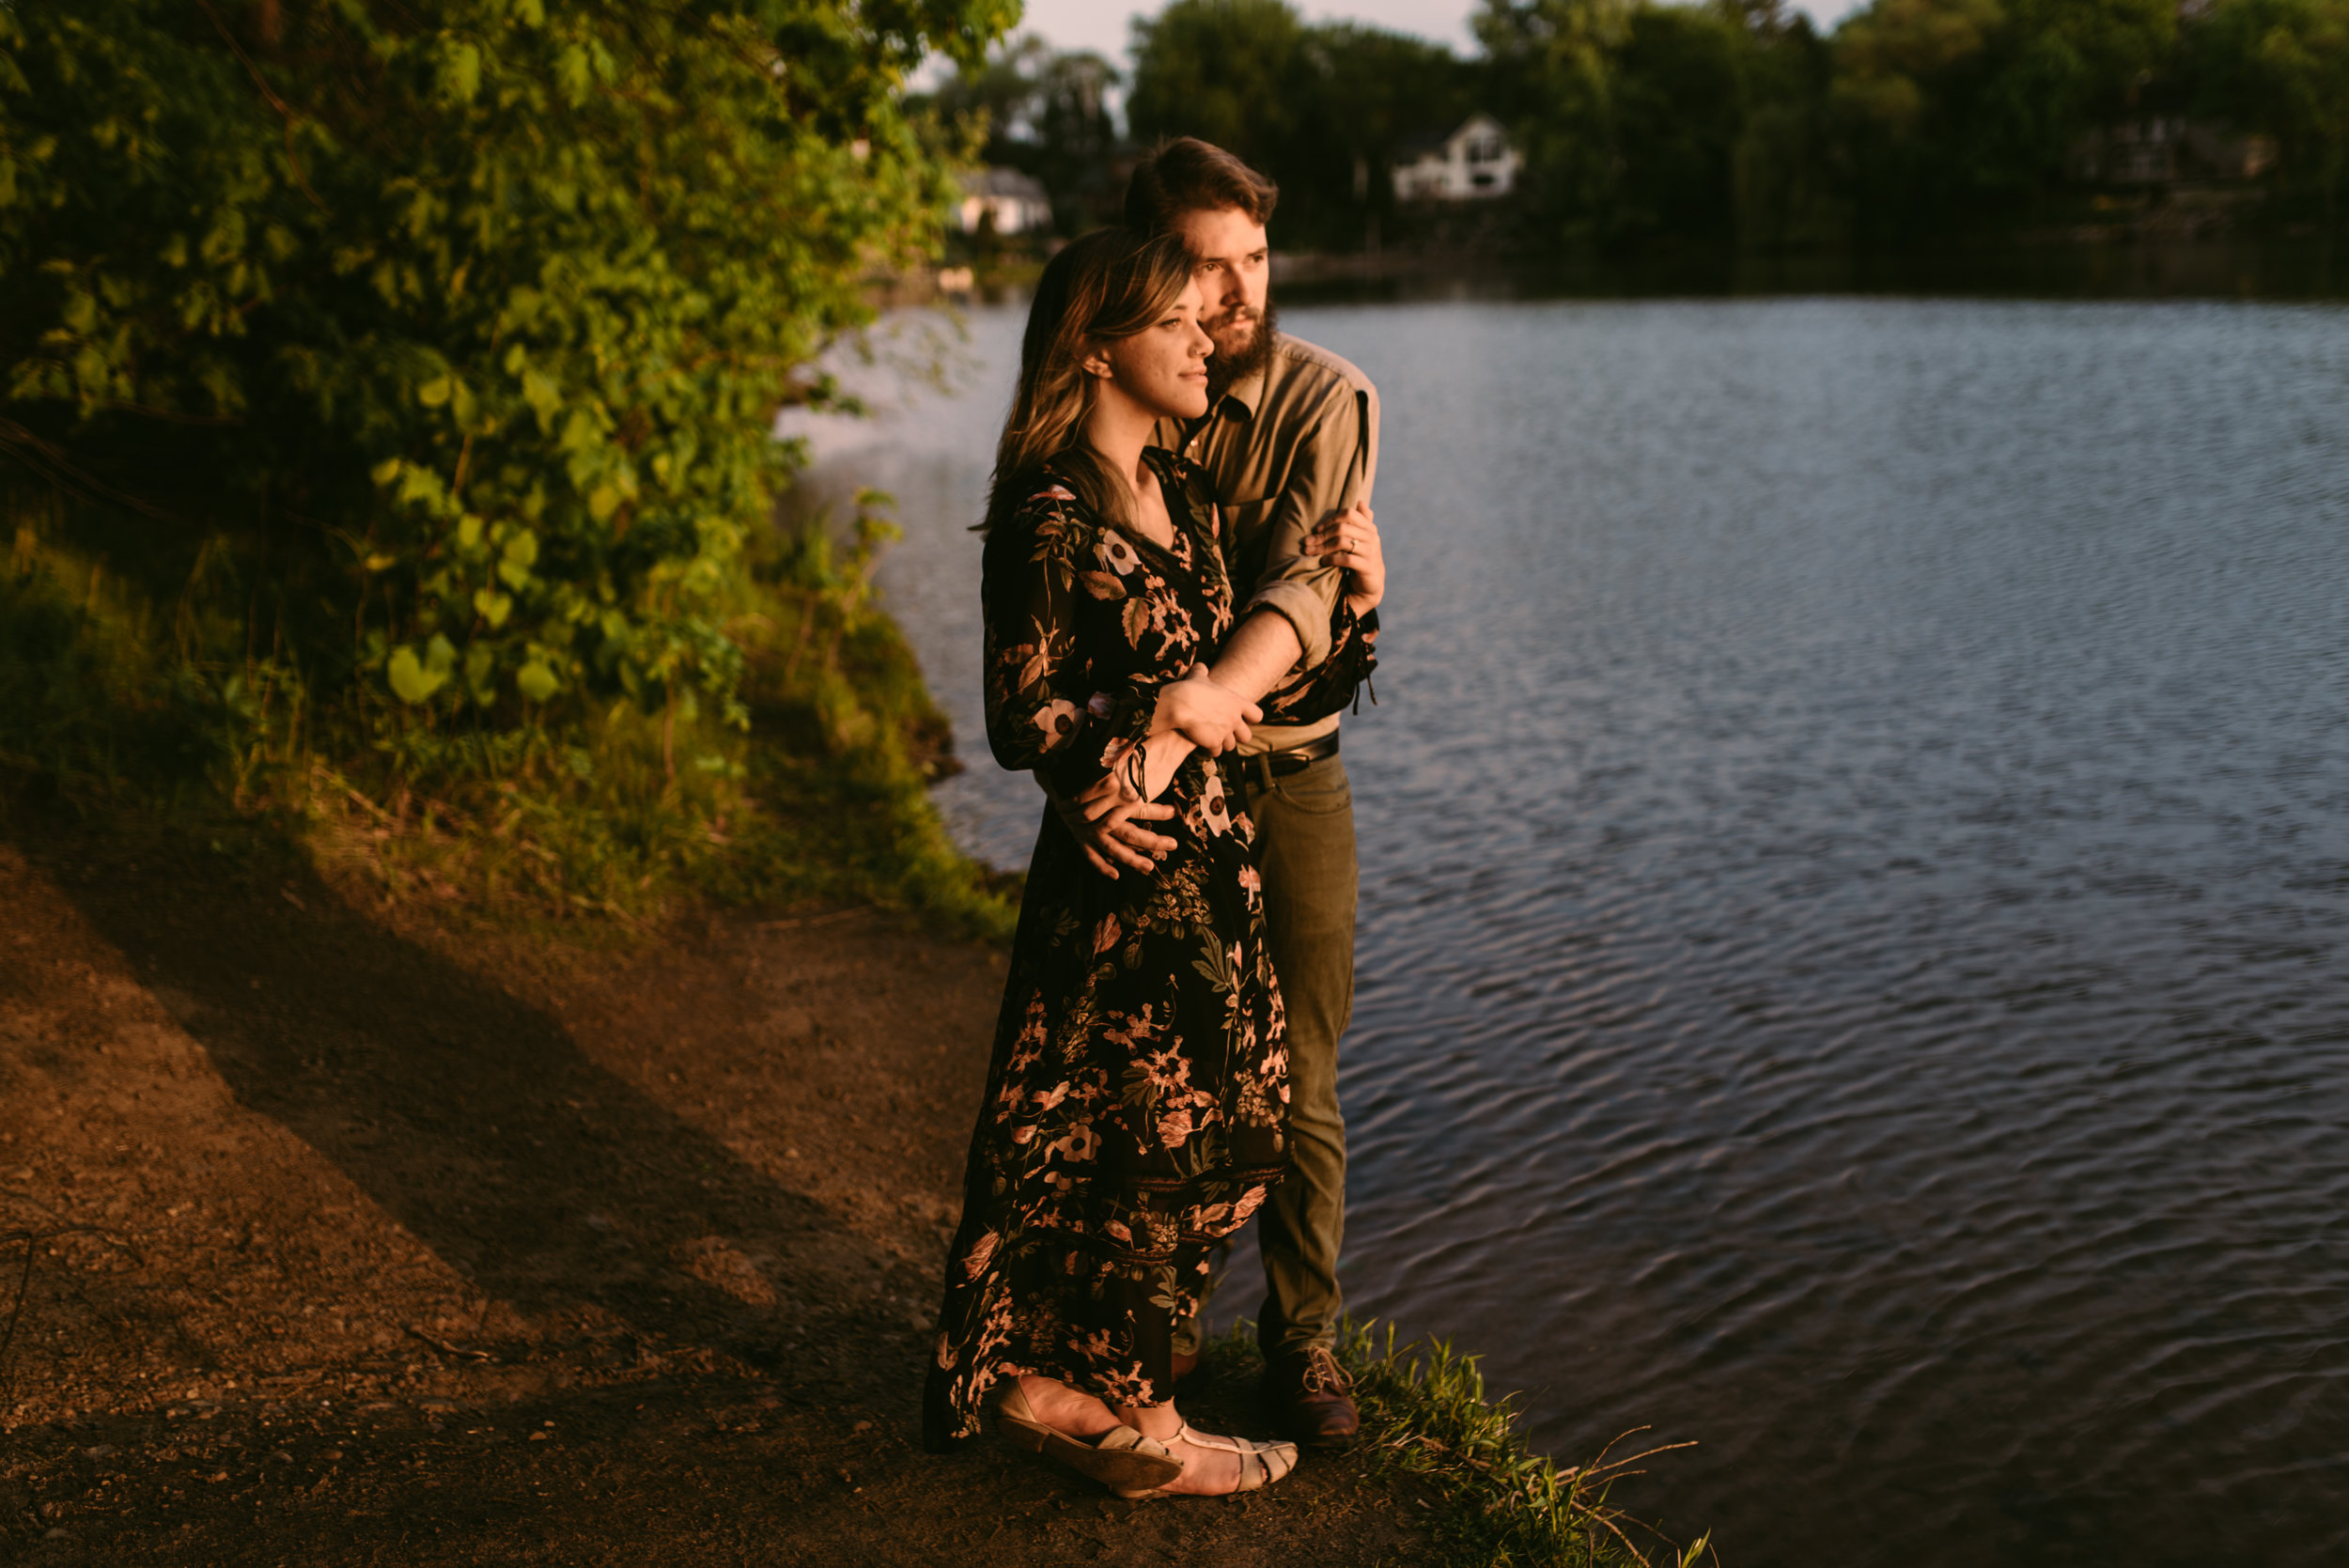 minnesota-sunset-engagement-session.jpg